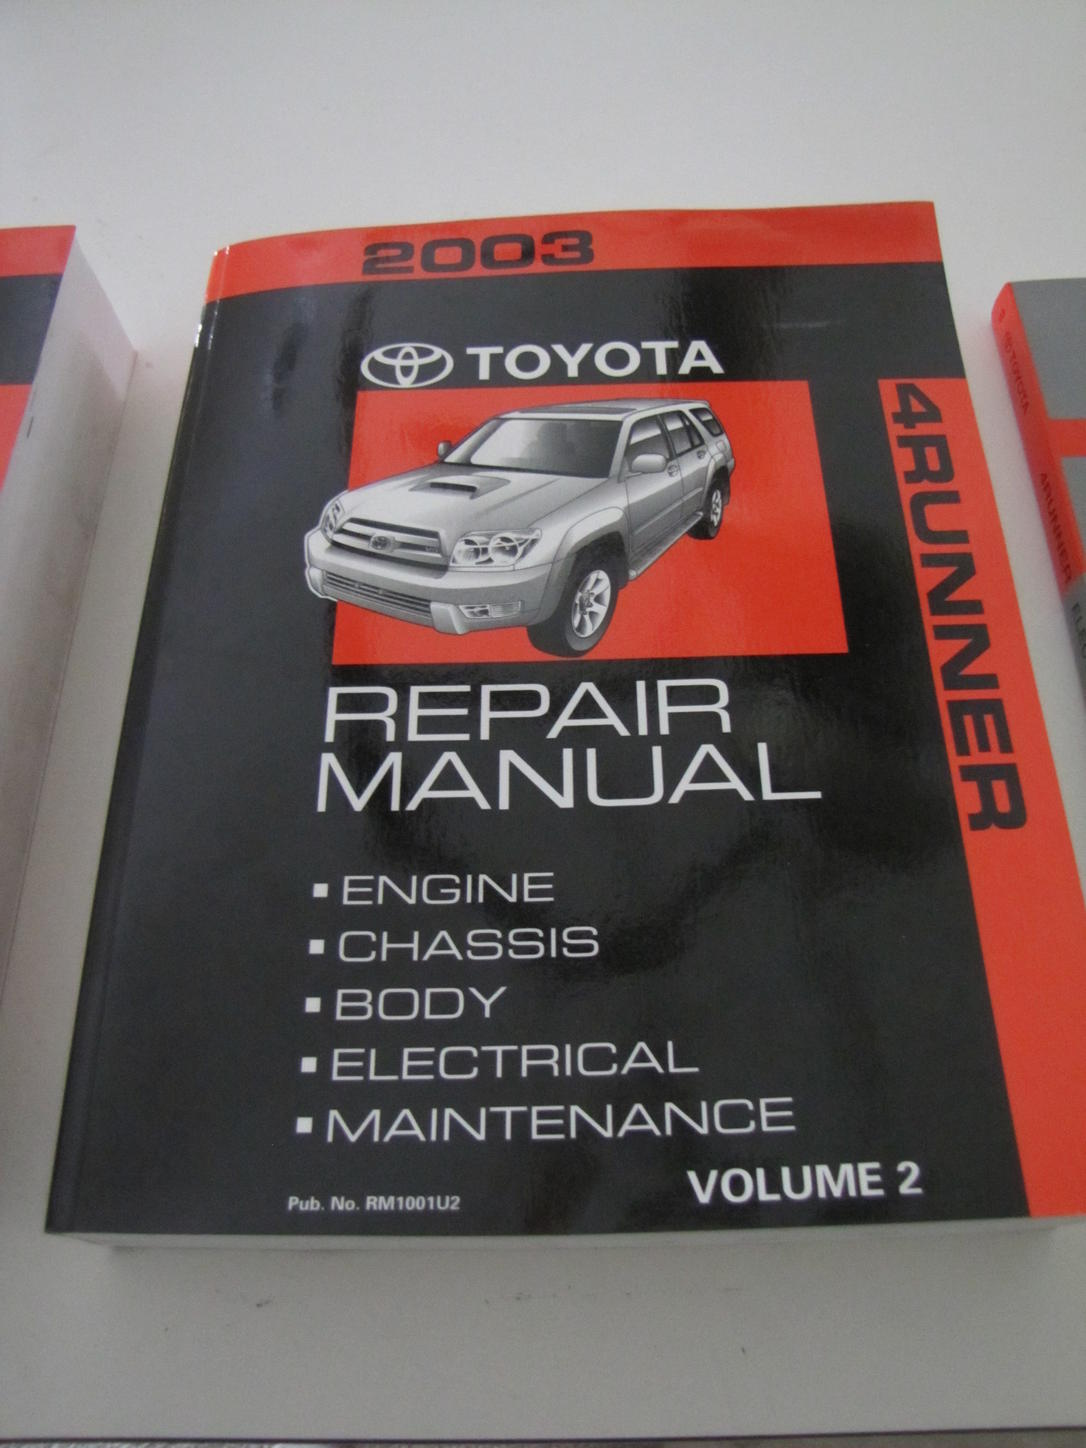 2003 toyota corolla owners manual pdf